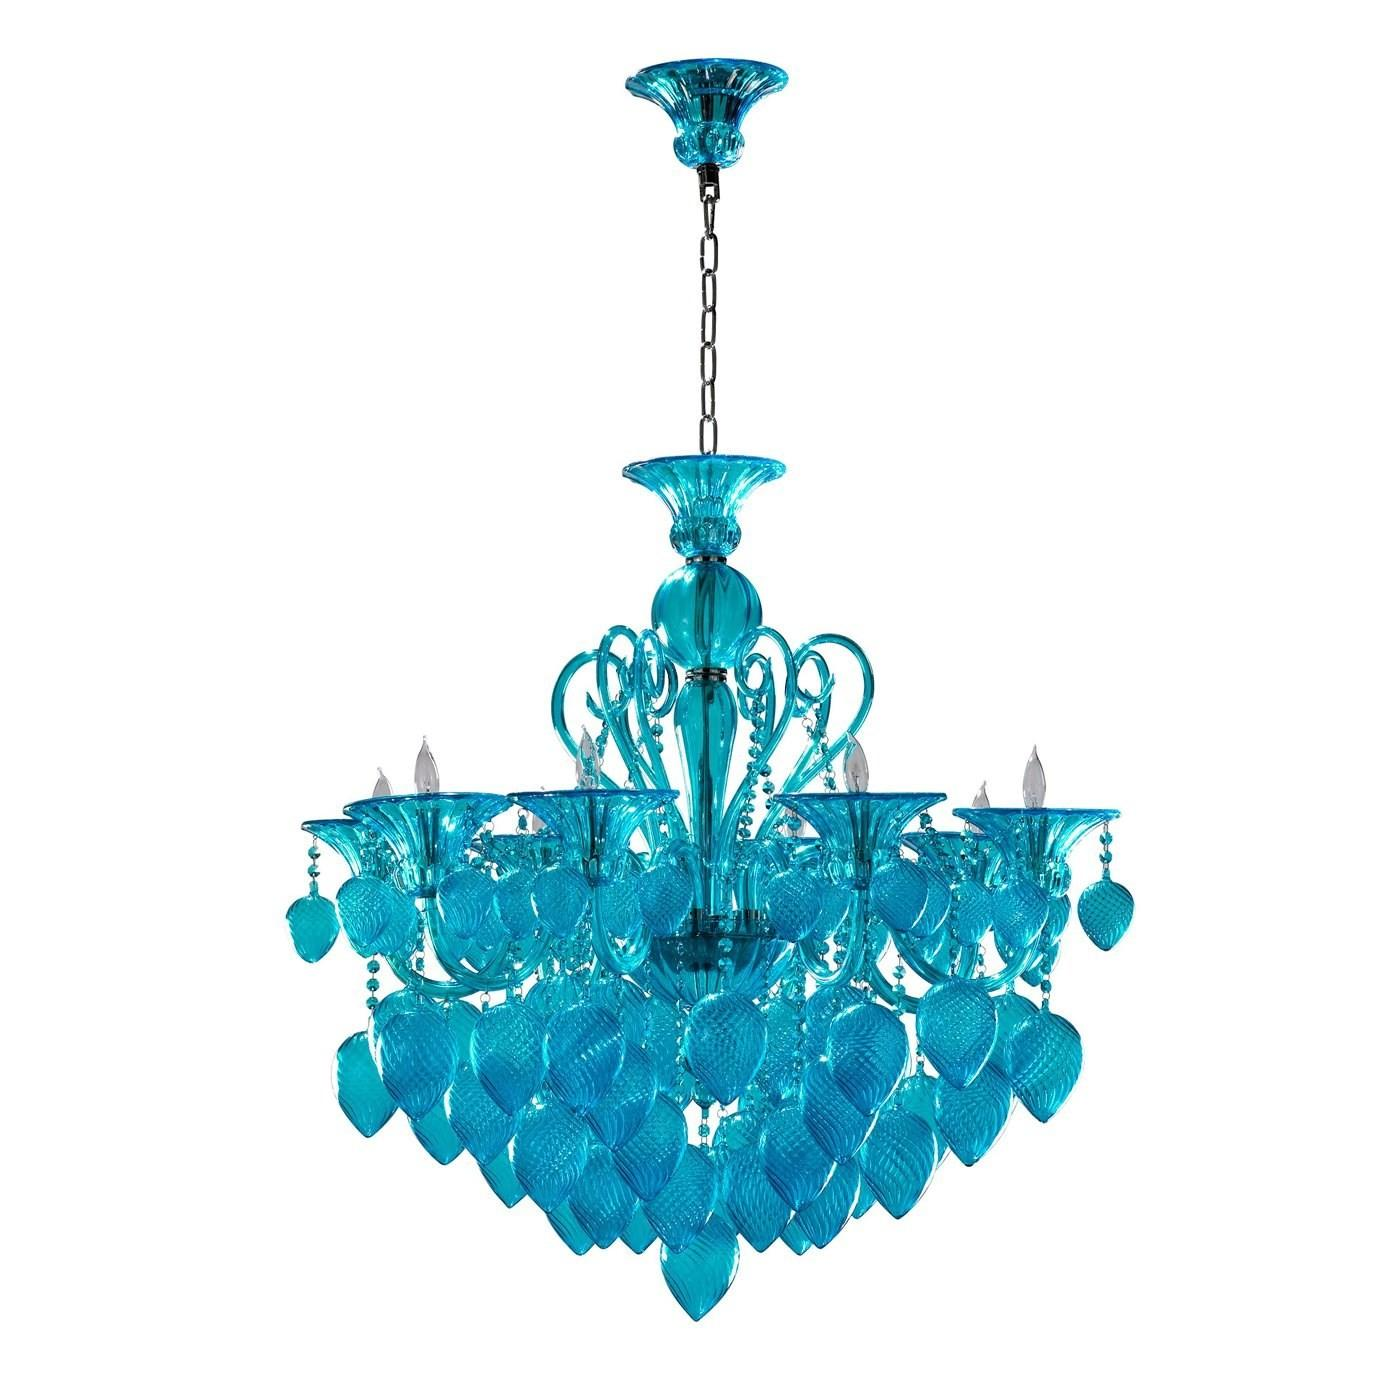 Cyan Design Chianti Light Chandelier Aqua